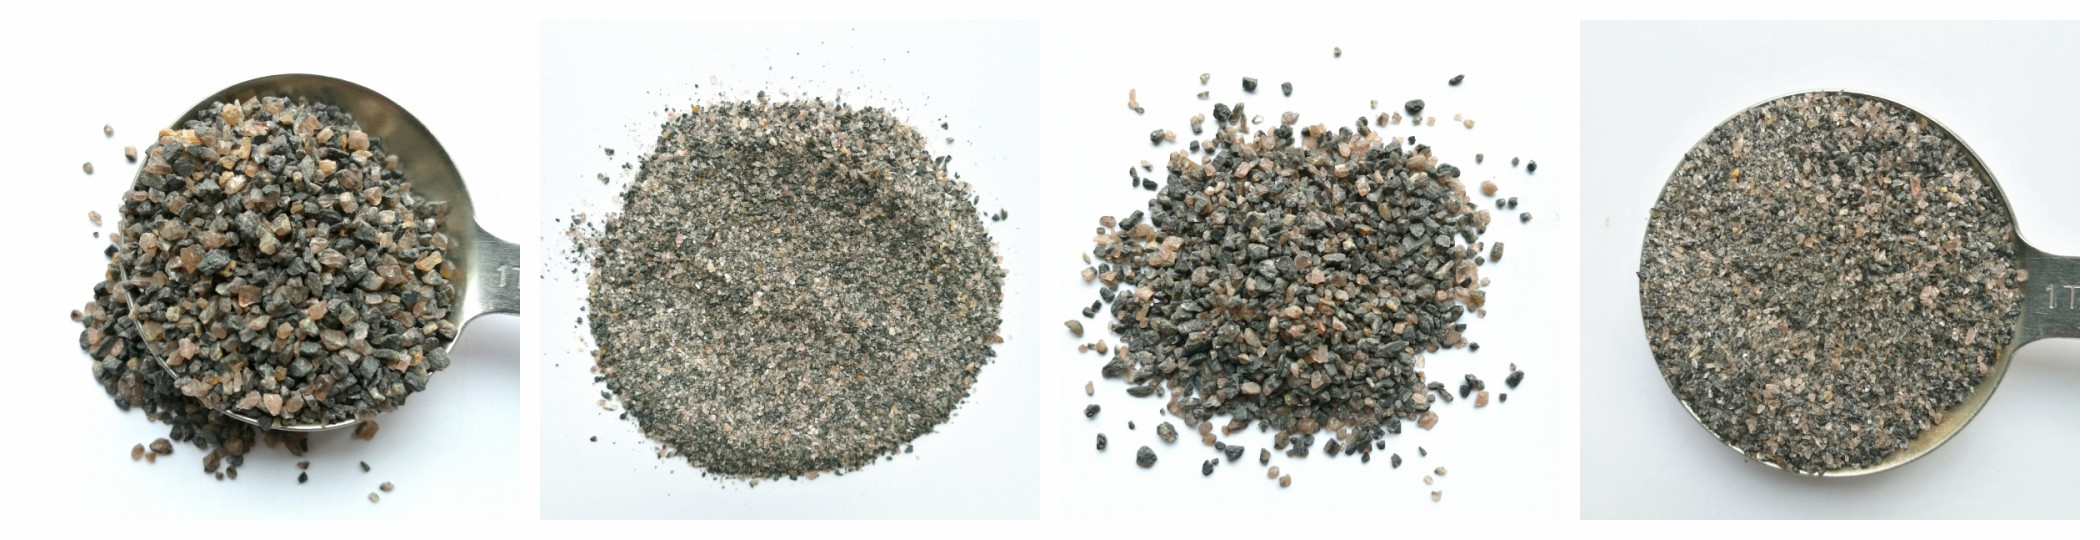 Andalusite Powder,Refractory Andalusite,Andalusite Mineral